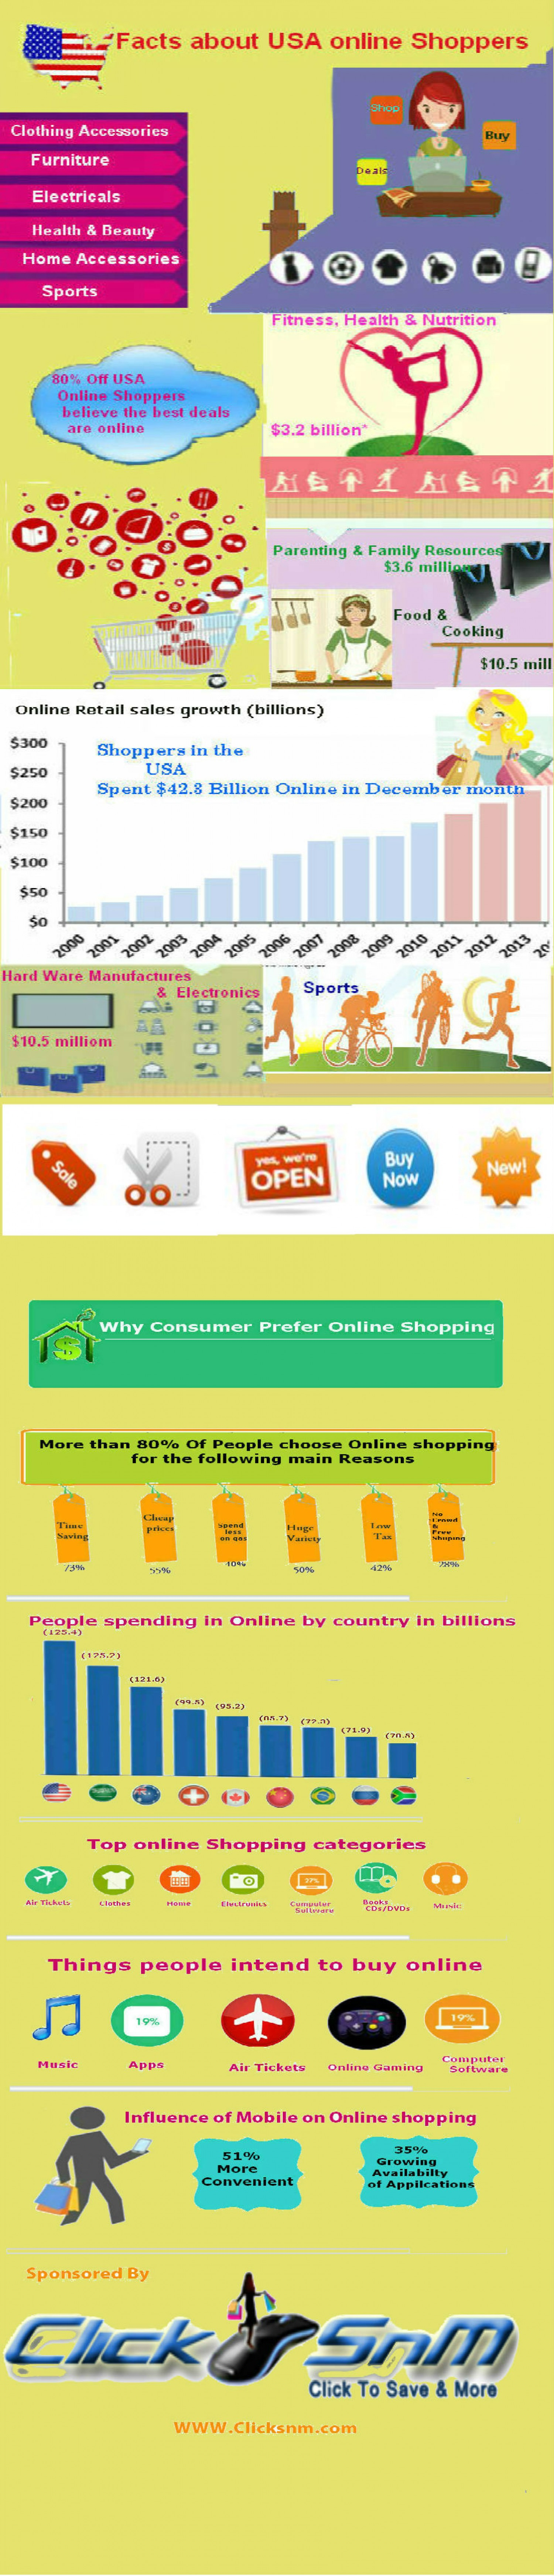 Facts about USA online shoppers